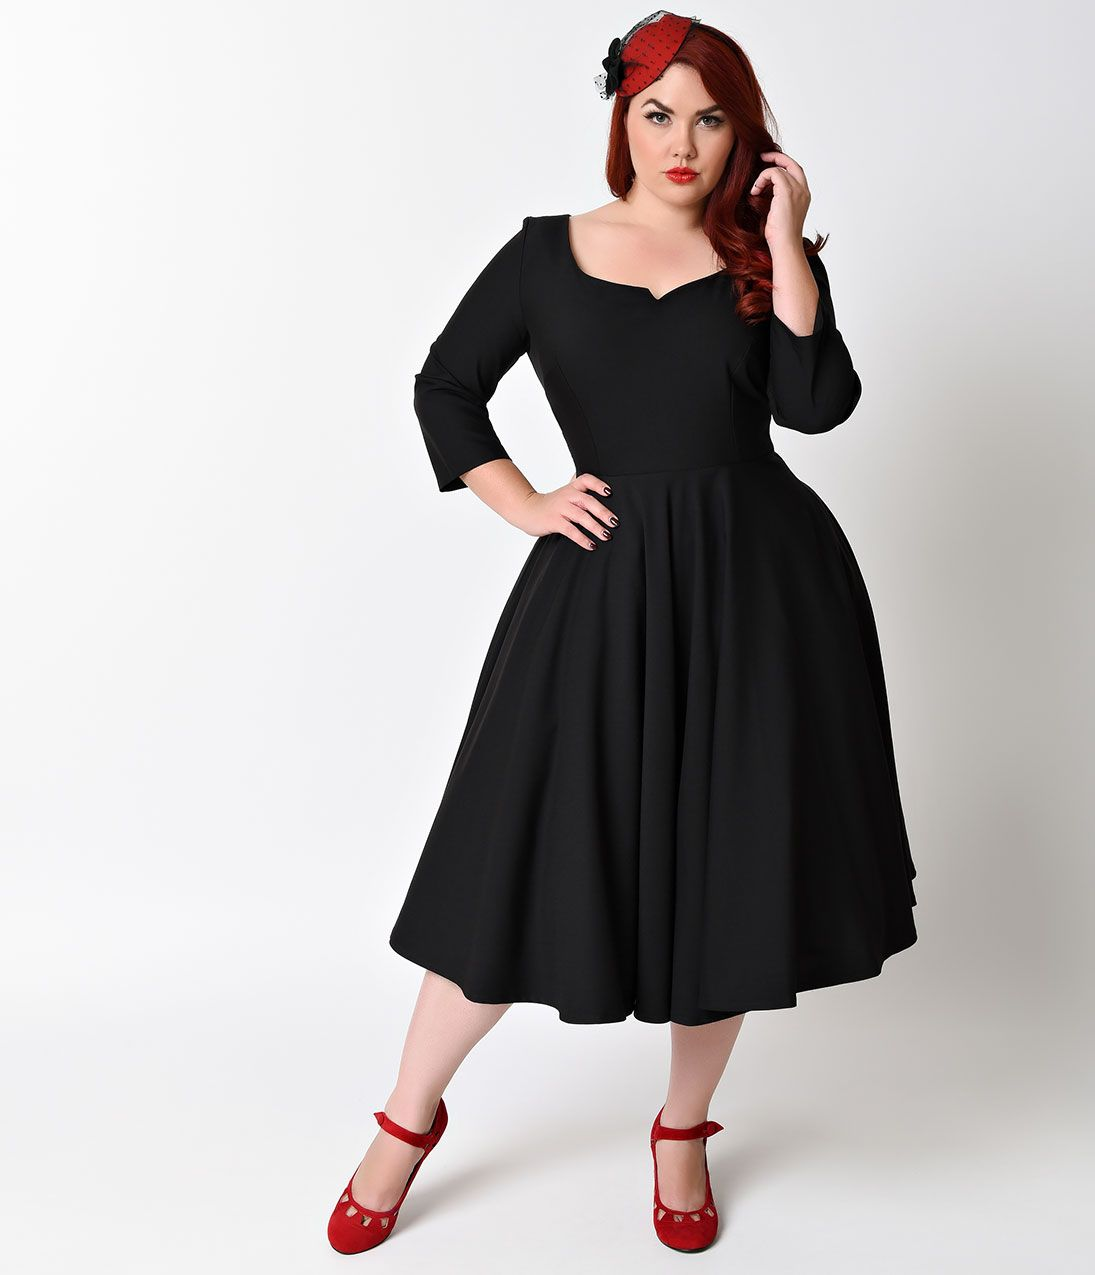 Vintage cocktail dresses party dresses prom dresses quarter plus size 1950s vintage style black quarter sleeve serena stretch swing dress 13800 at vintagedancer ombrellifo Gallery